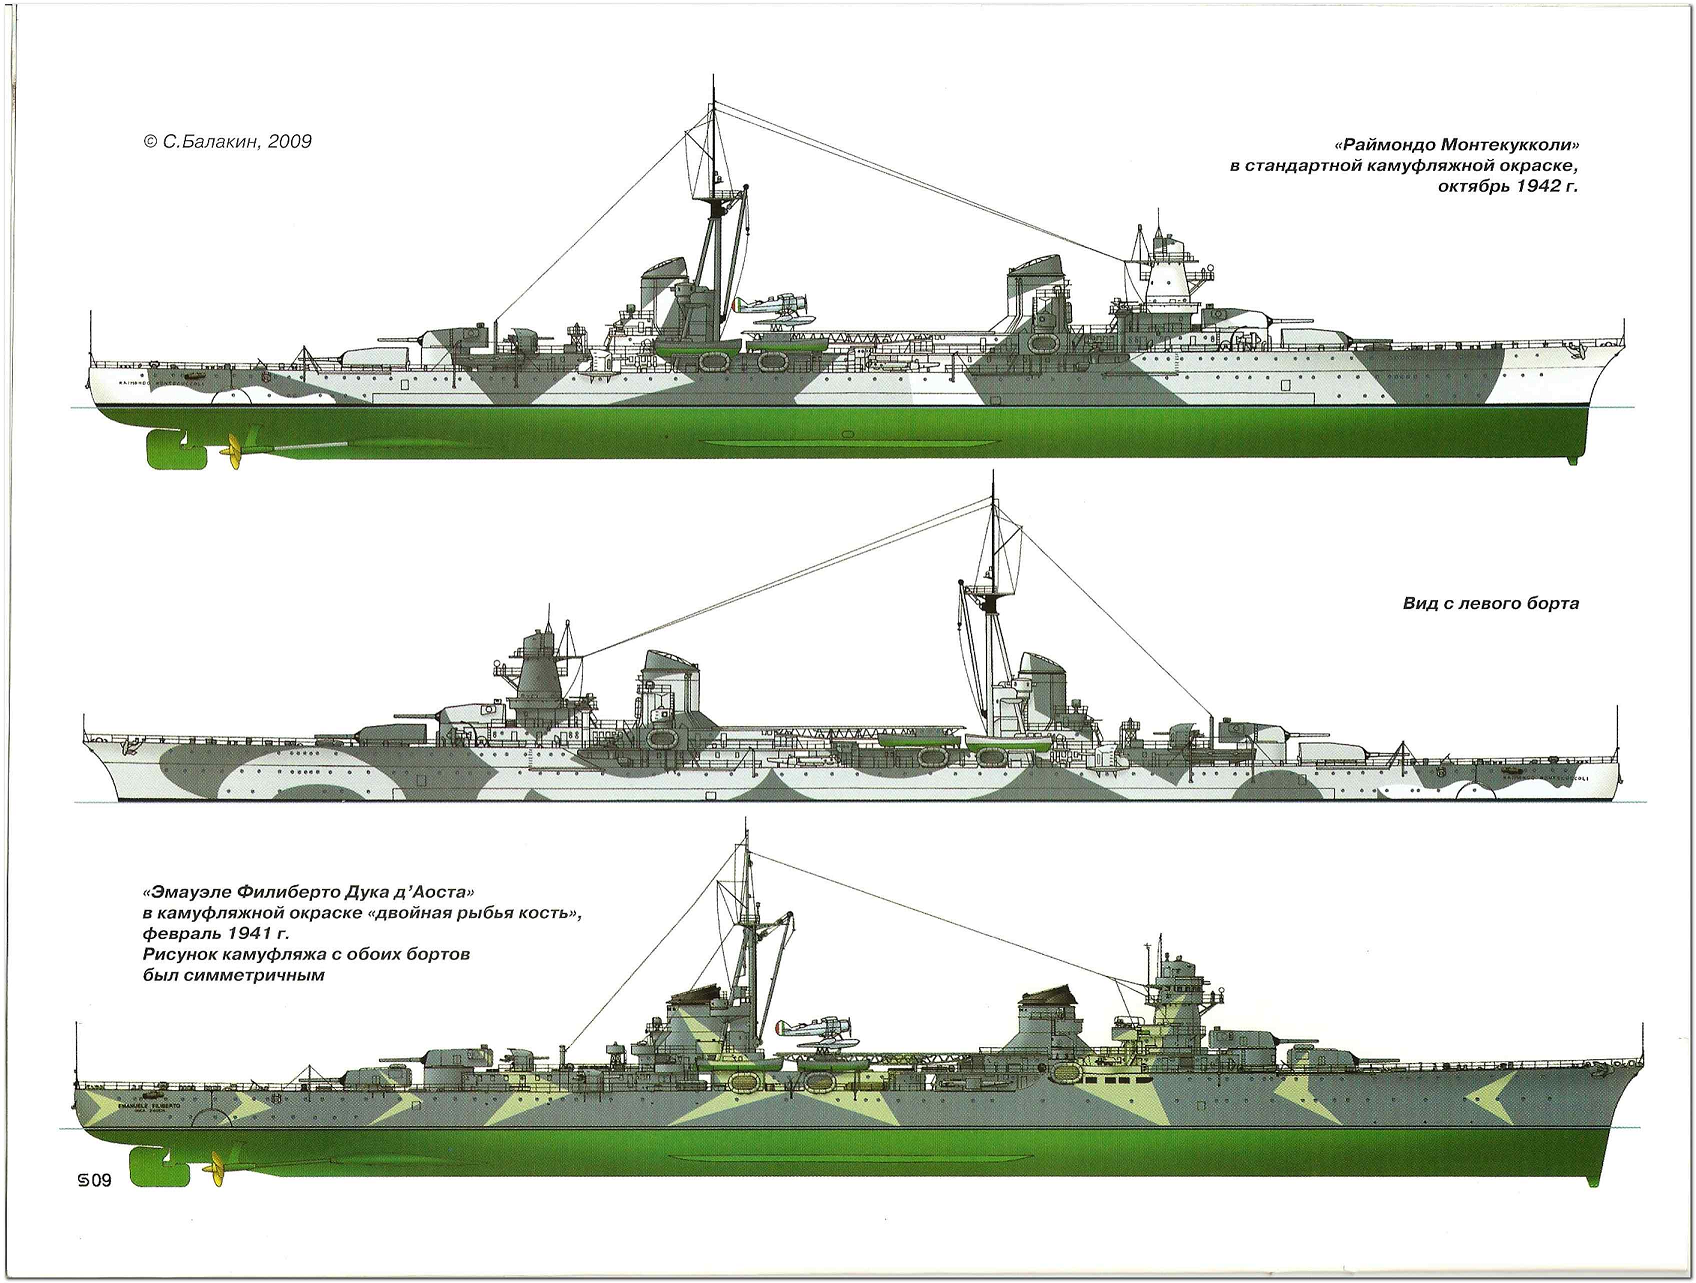 russian light heavy cruisers wwii 1941 1942 texas battleship diagram battleship in ww2 russian diagram [ 1696 x 1283 Pixel ]